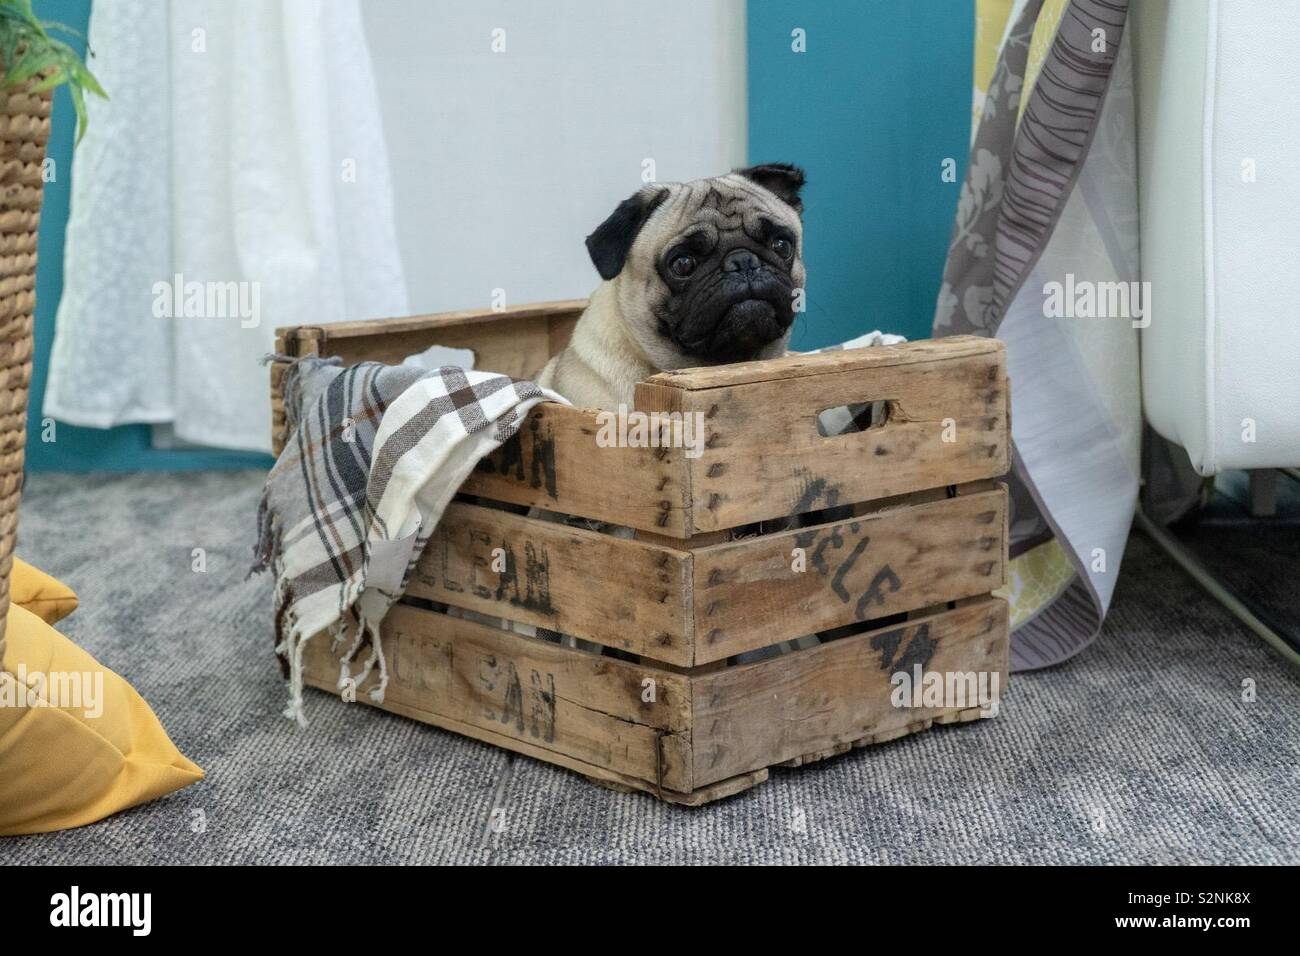 Pug in a box - Stock Image